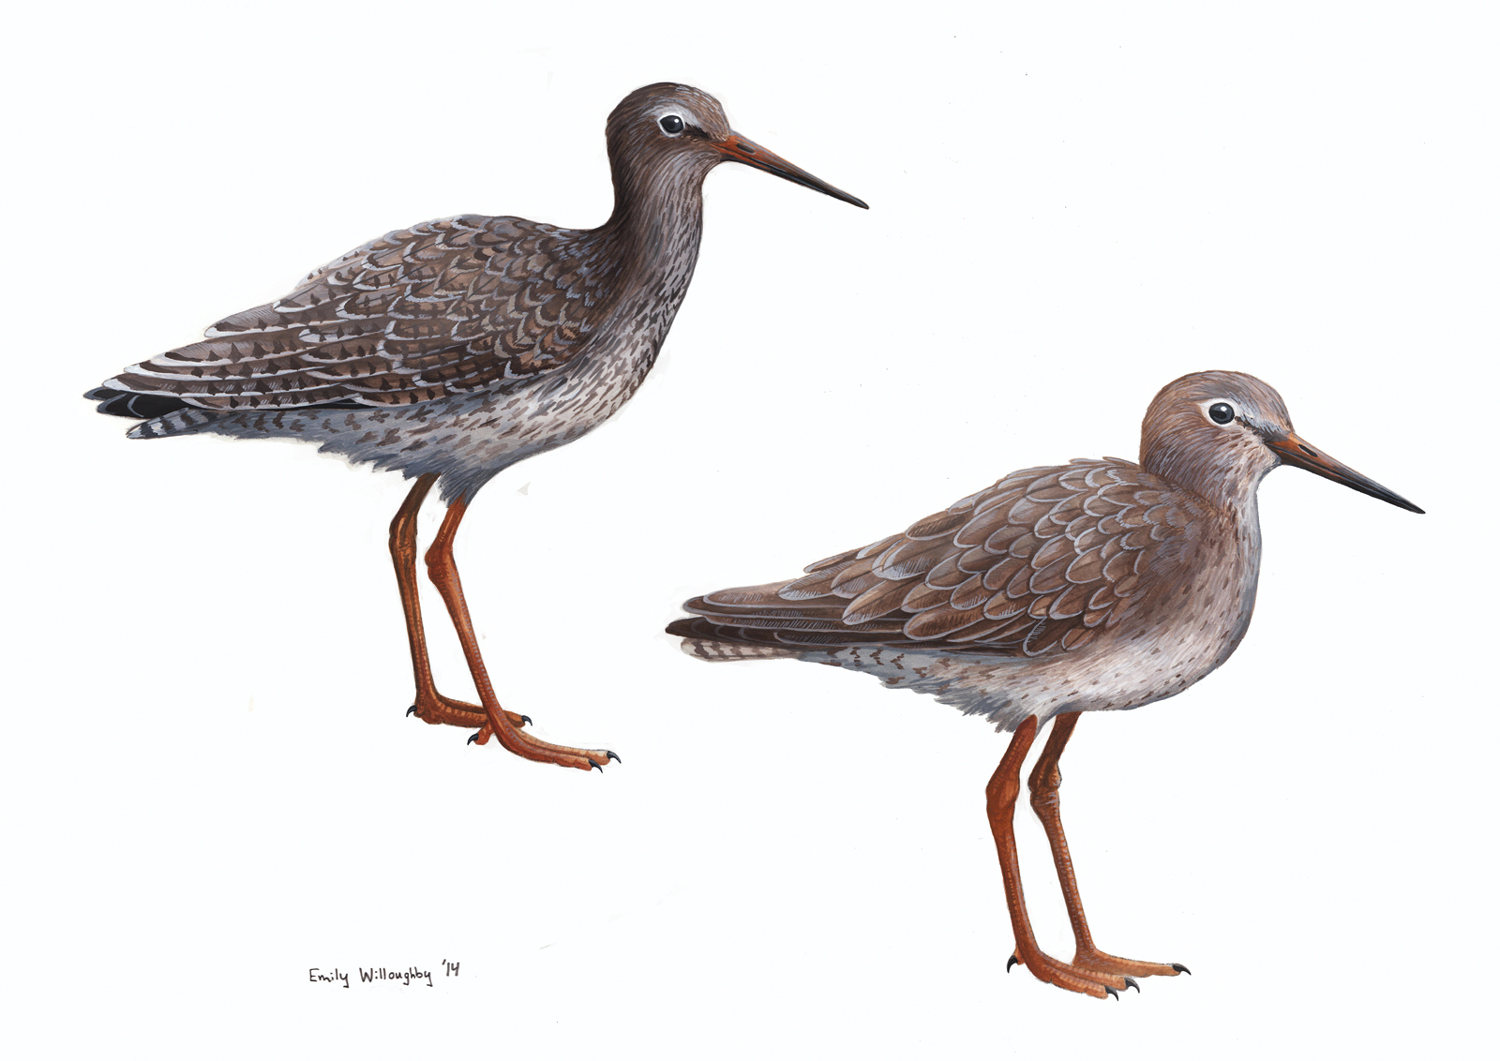 Common Redshank Plumages